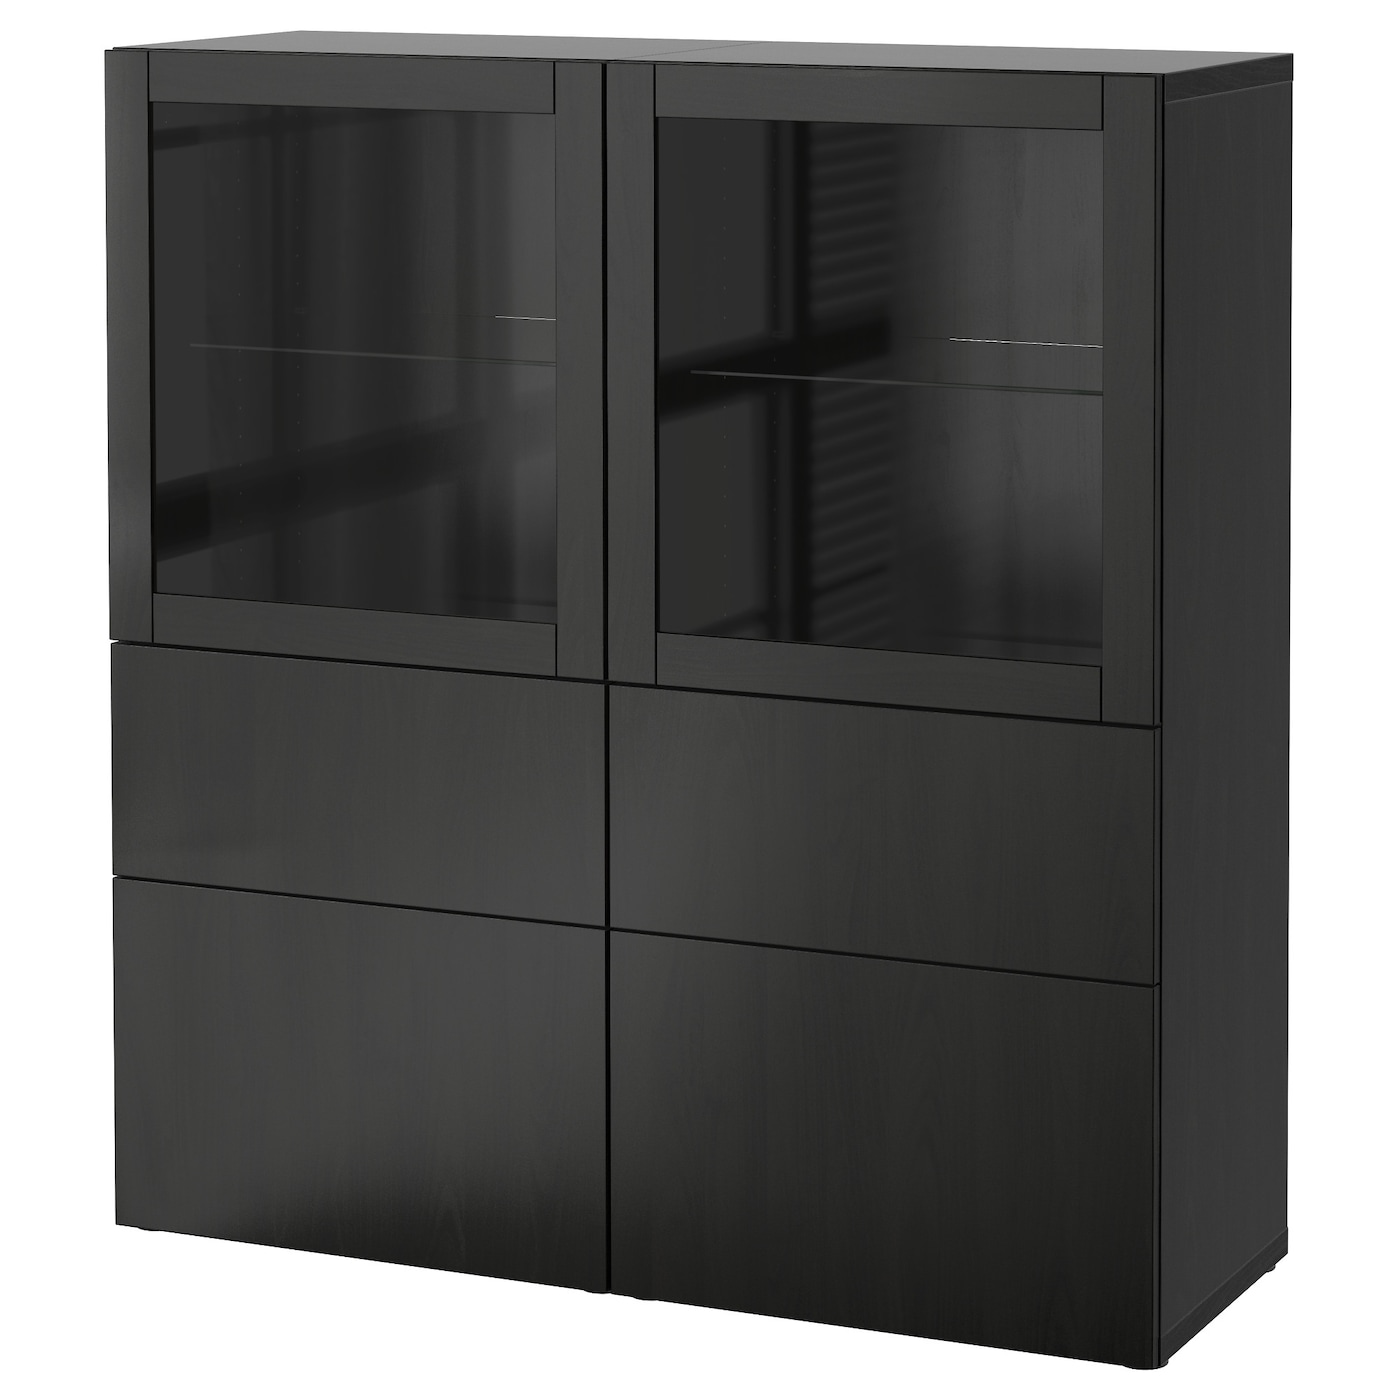 best combinaison rangement ptes vitr es lappviken sindvik brun noir verre transparent 120 x 40. Black Bedroom Furniture Sets. Home Design Ideas